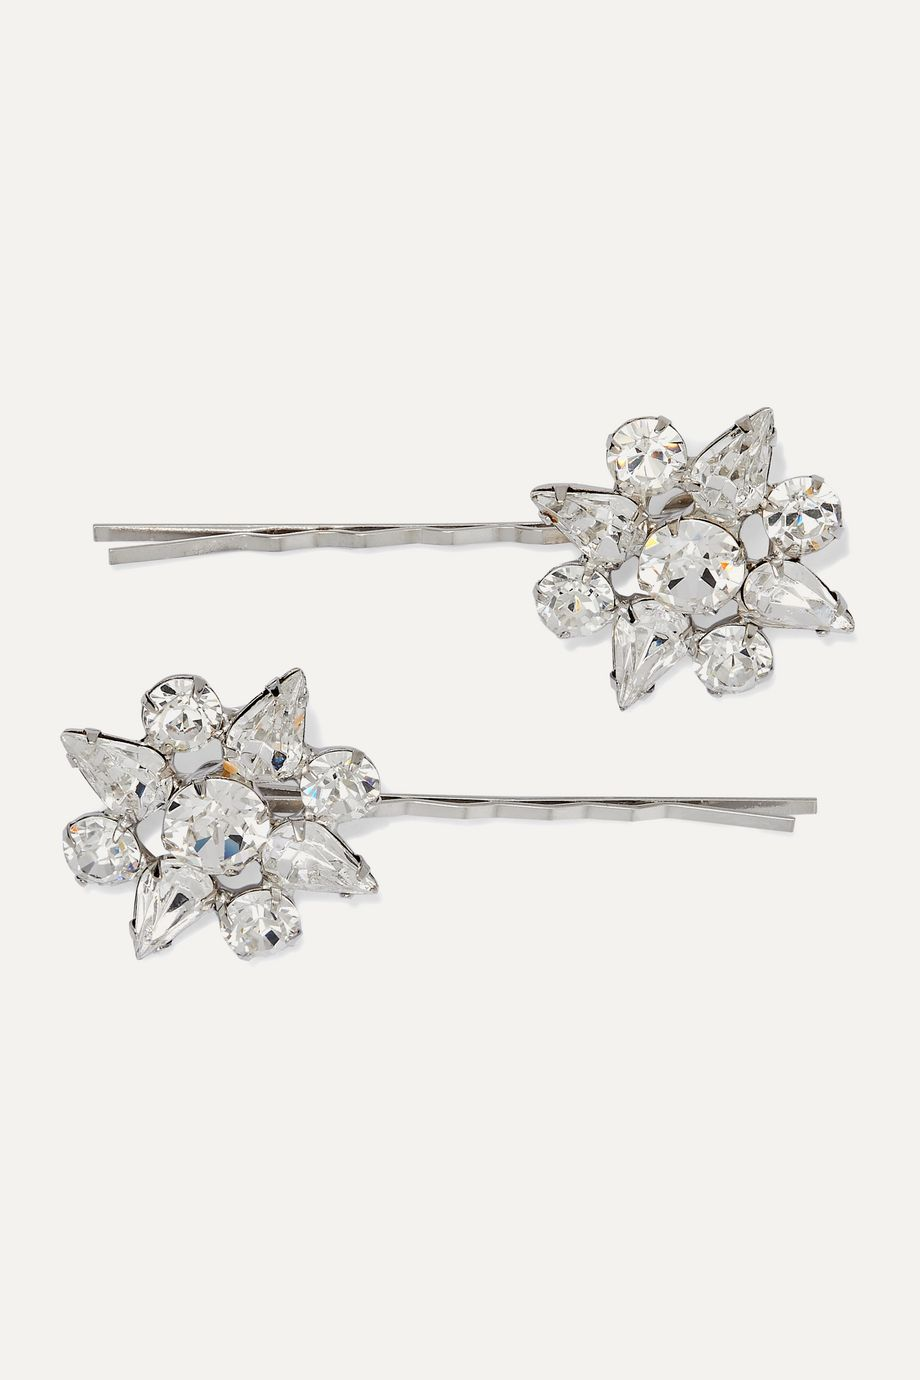 Jennifer Behr Valencia set of two rhodium-plated Swarovski crystal hair slides